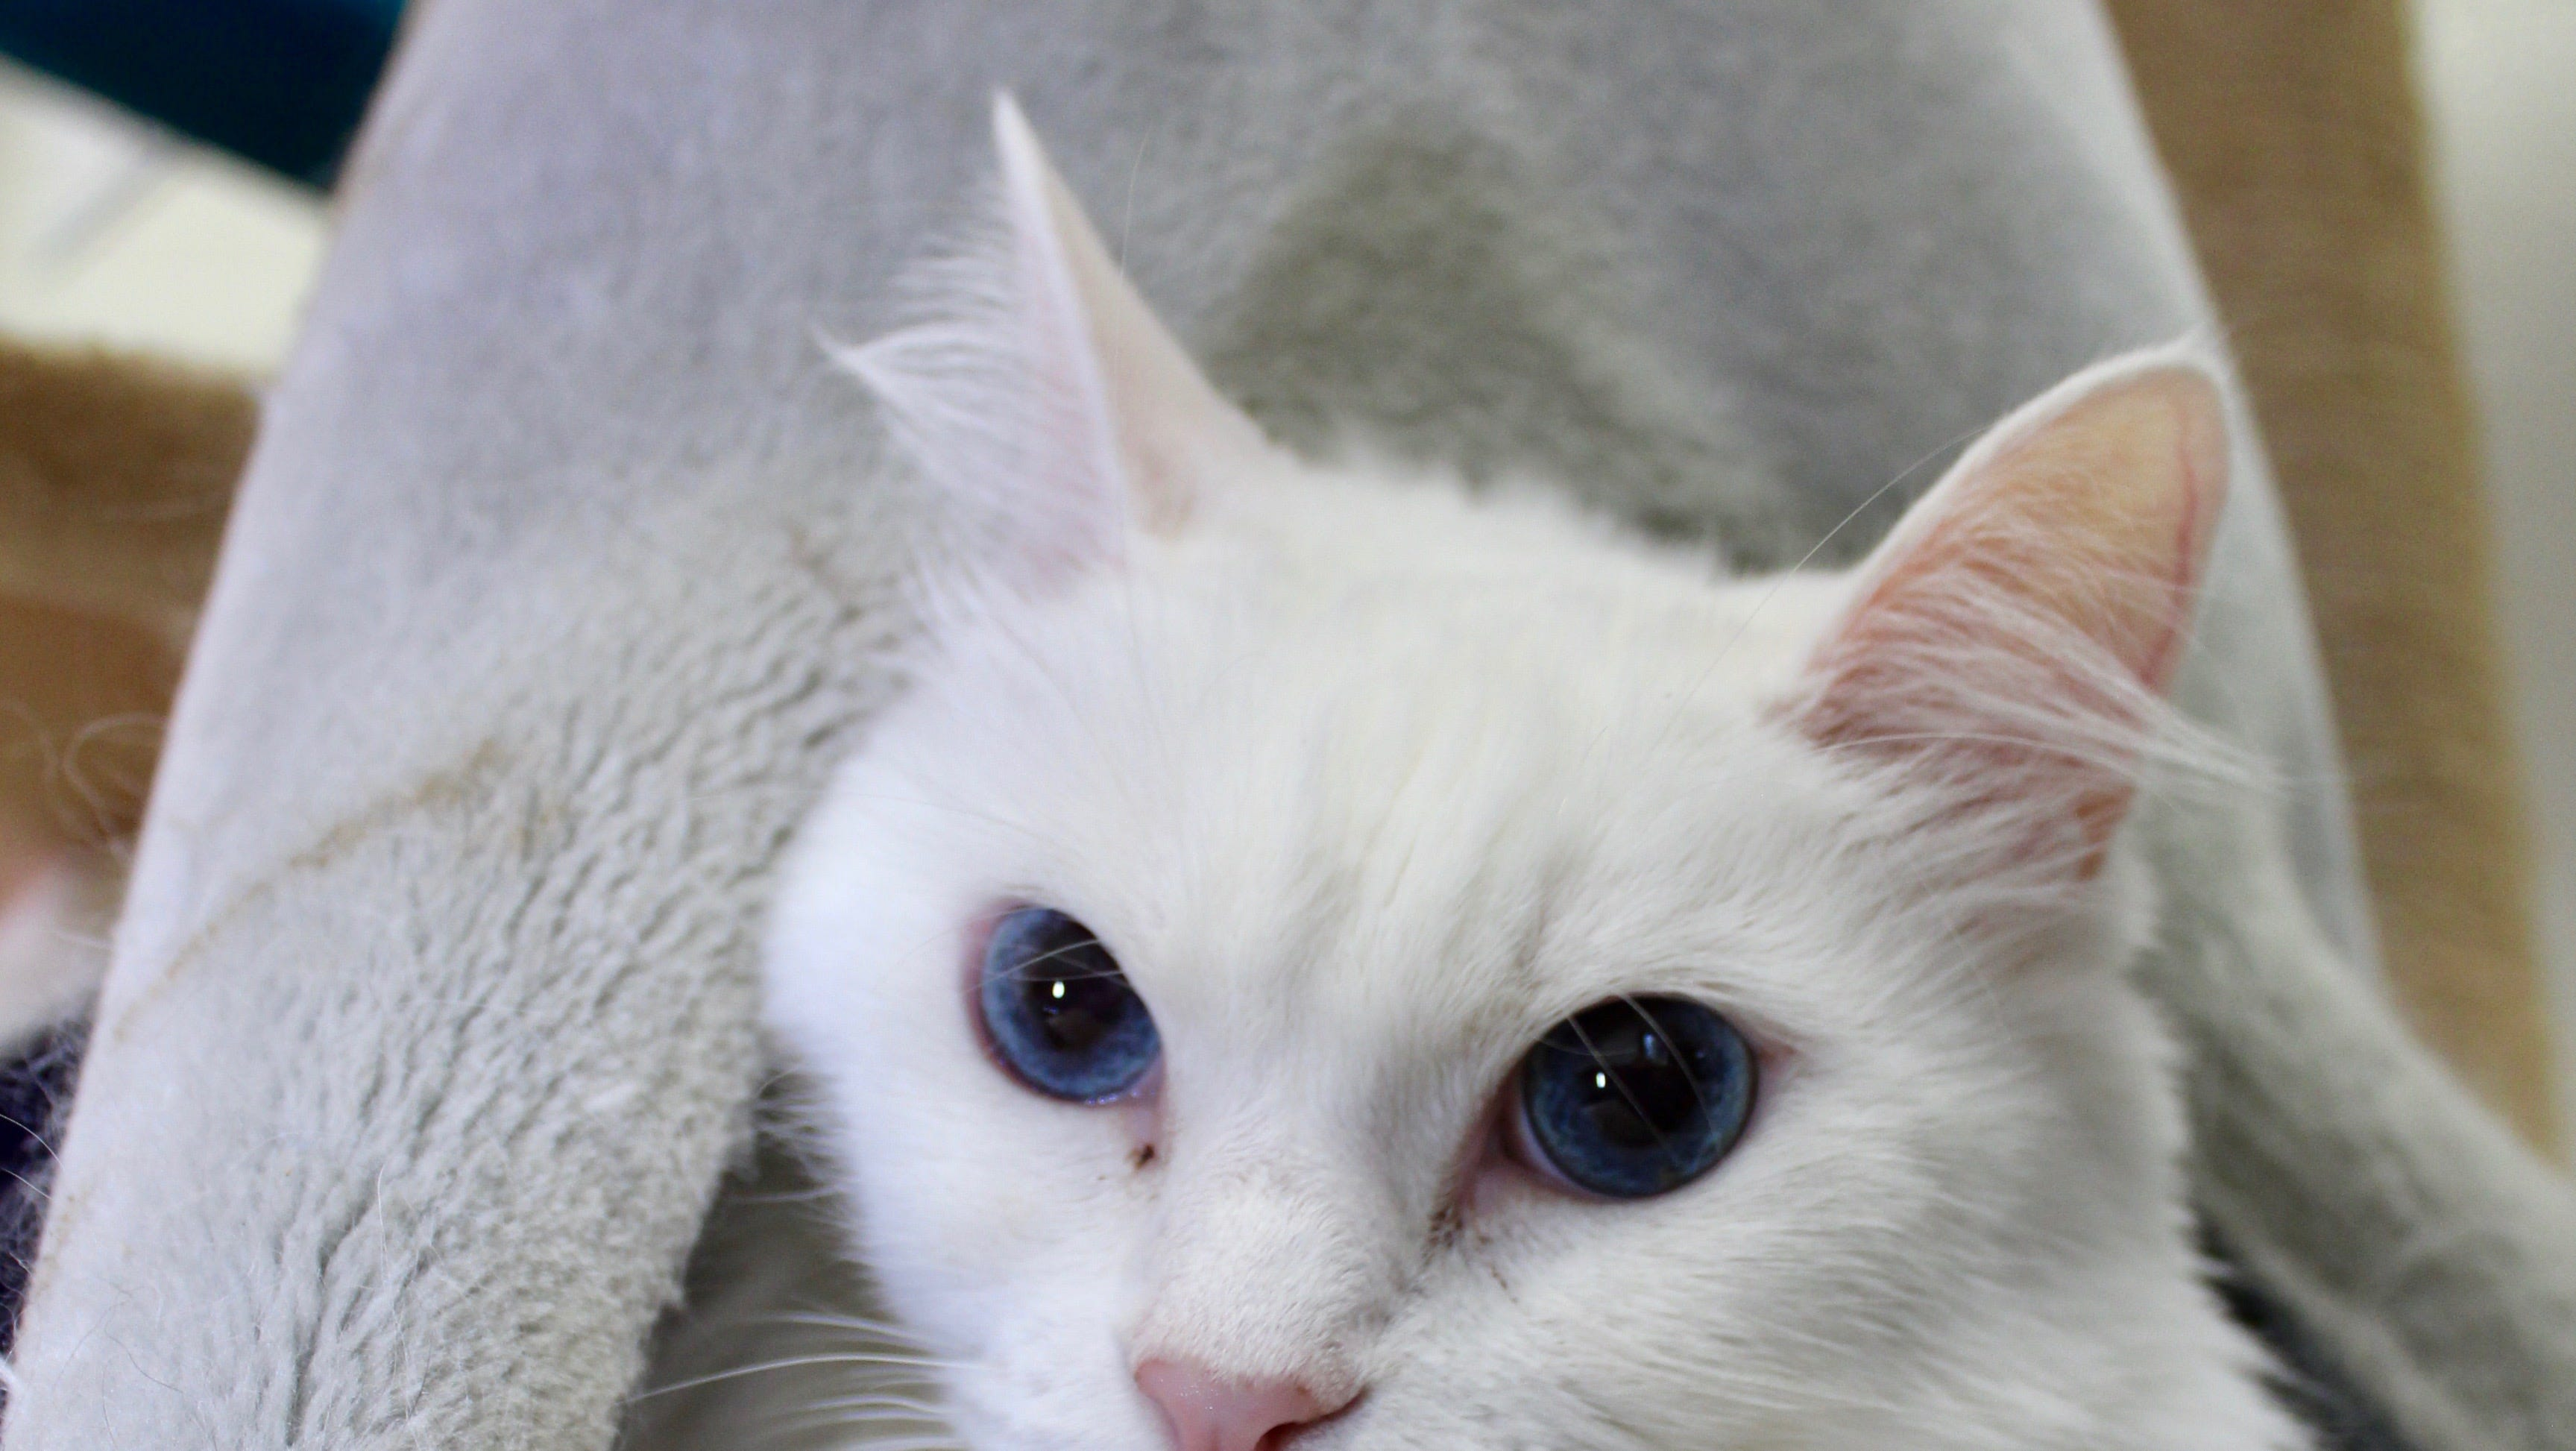 Bella, a 10-year-old Angora mix female. Lived most of her life in a quiet home, ready to meet new friends who can take a slow and gentle approach. Described as mellow and loves being brushed. Living well with other kitties in a shared cat suite.